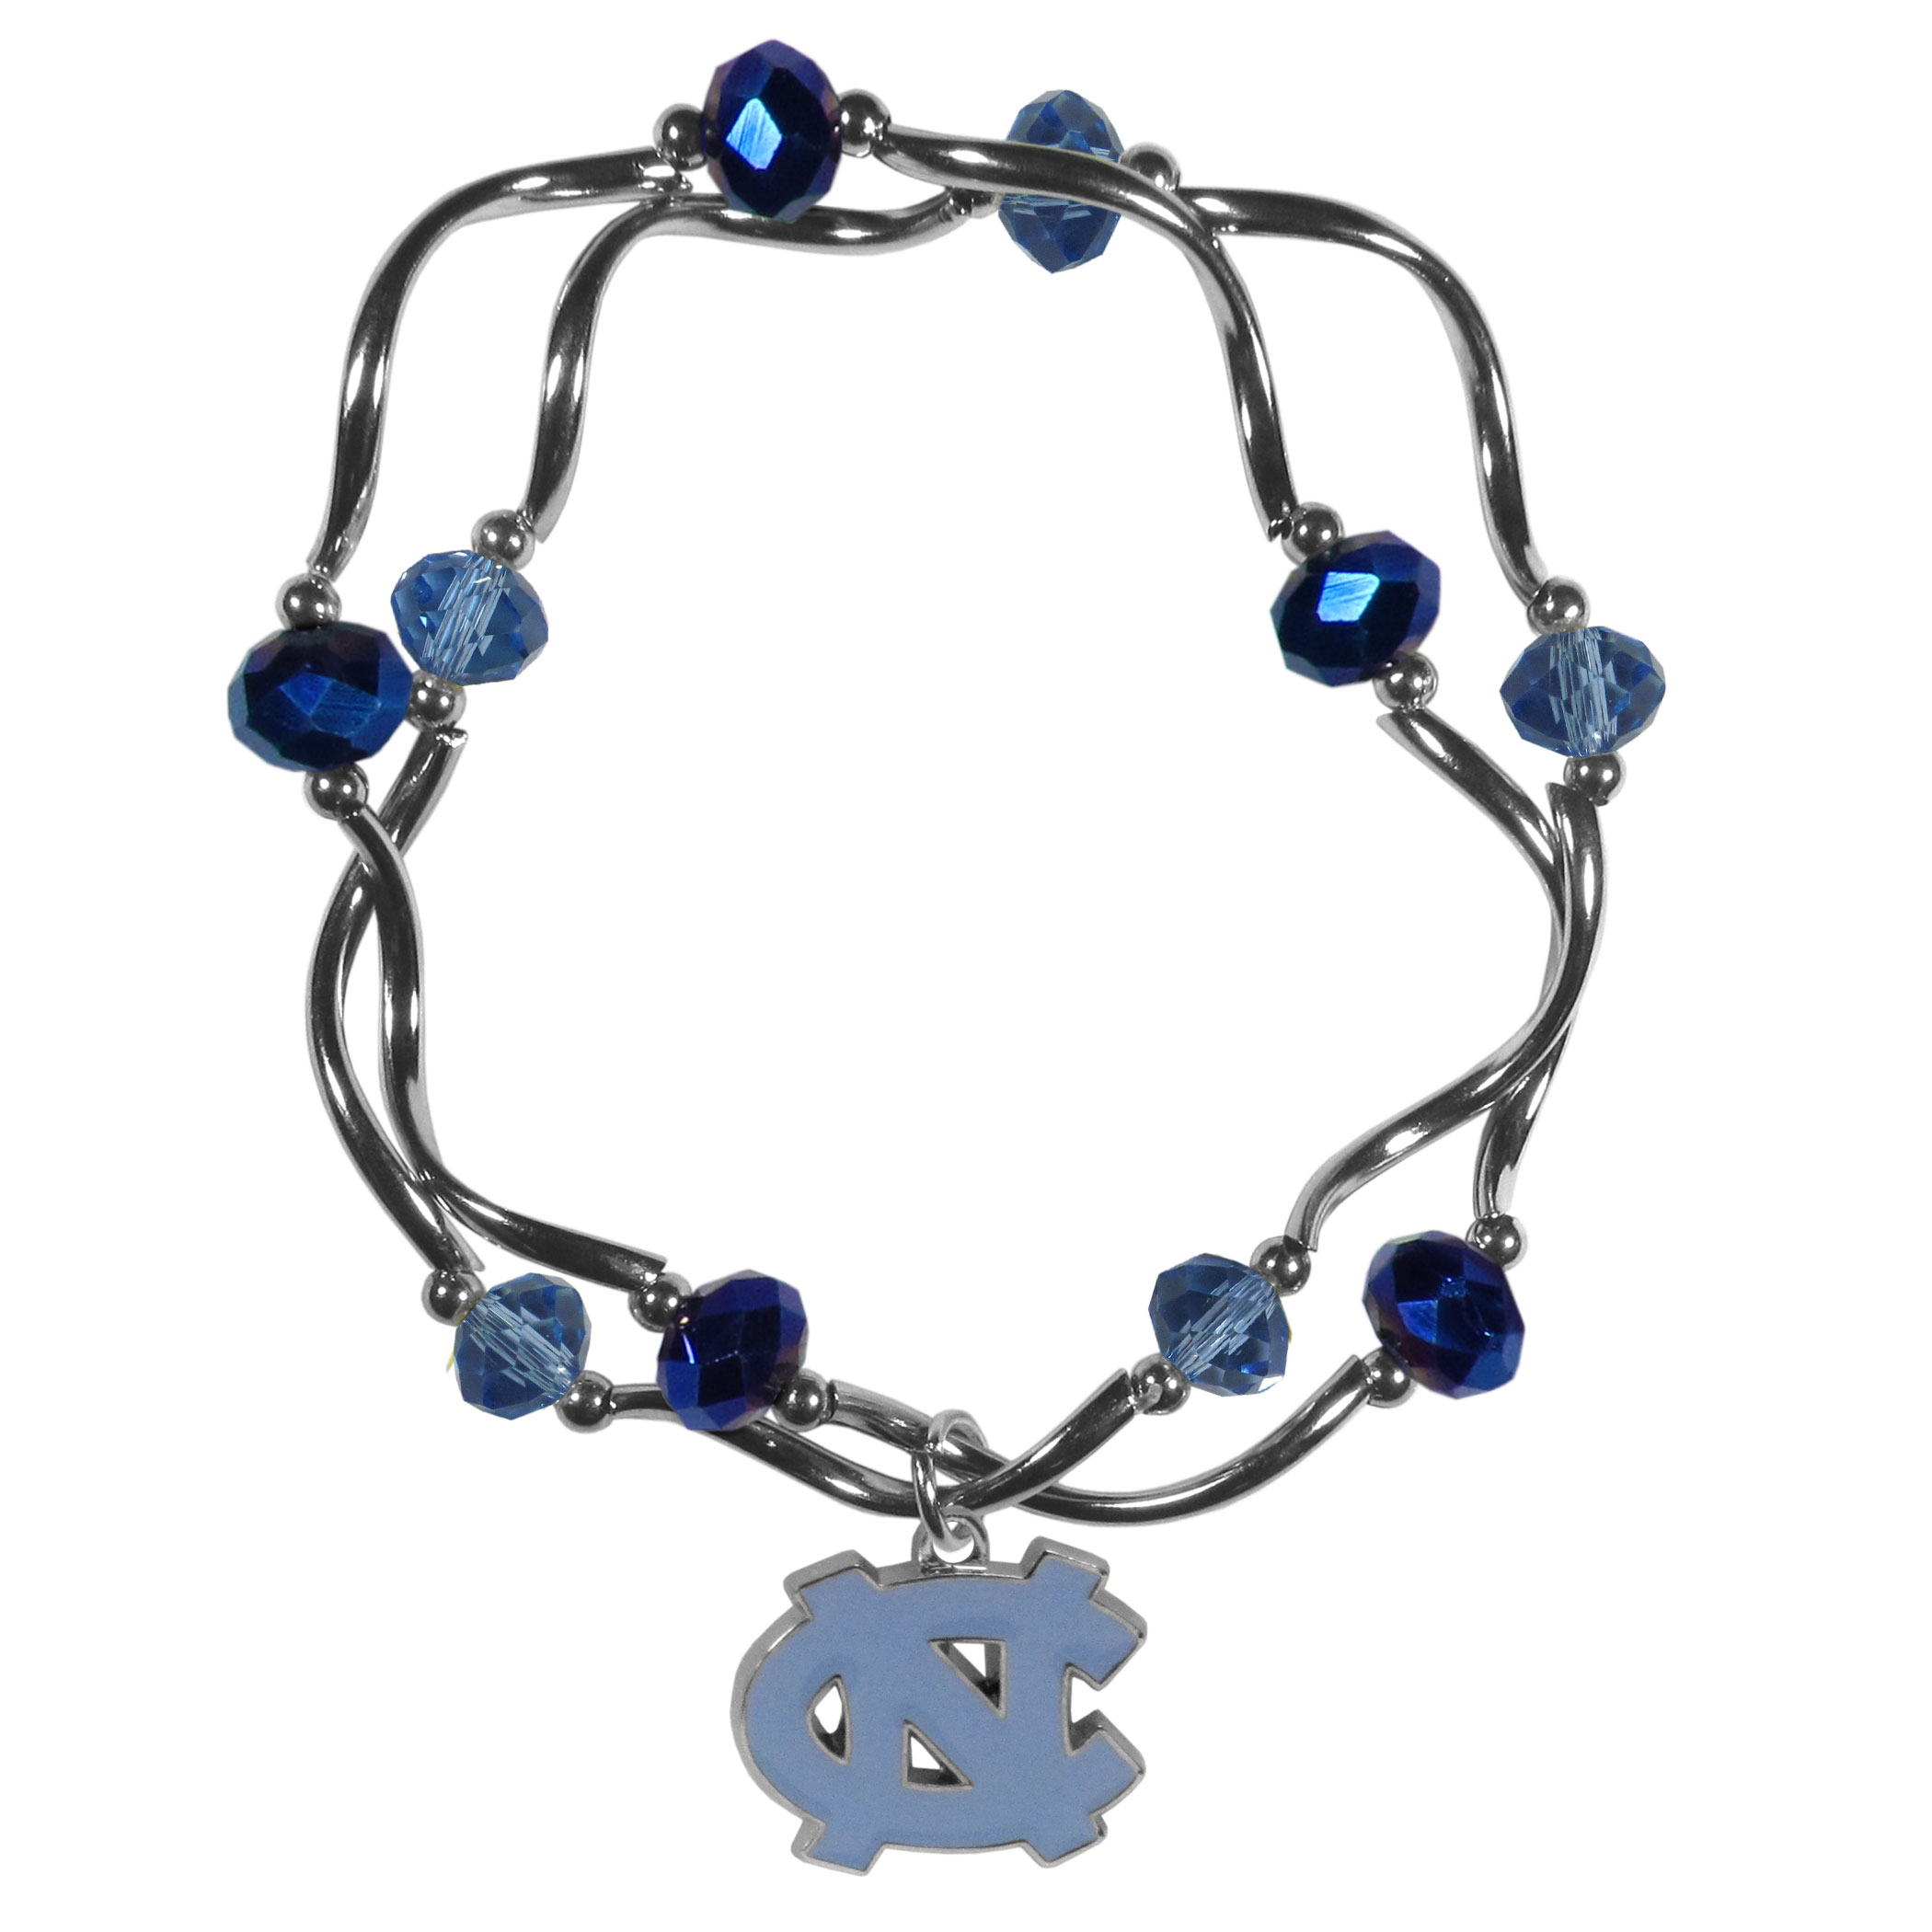 N. Carolina Tar Heels Crystal Bead Bracelet - This delicate bead bracelet has eye-catching team colored beads that are strung on 2 stretch cords that provide a comfortable and easy fit. The crystals are separated by beautiful helix beads in high polish chrome for a truly designer inspired look. The 2 strands of beads intertwine for a fun and stylish bracelet. This chic accessory is finished off with a N. Carolina Tar Heels team charm that has expertly carved detail and an enameled color finish. A contemporary look to thrill any female sports fan. Whether this a gift for yourself or someone special you cannot miss with this trend-setting fashion bracelet.